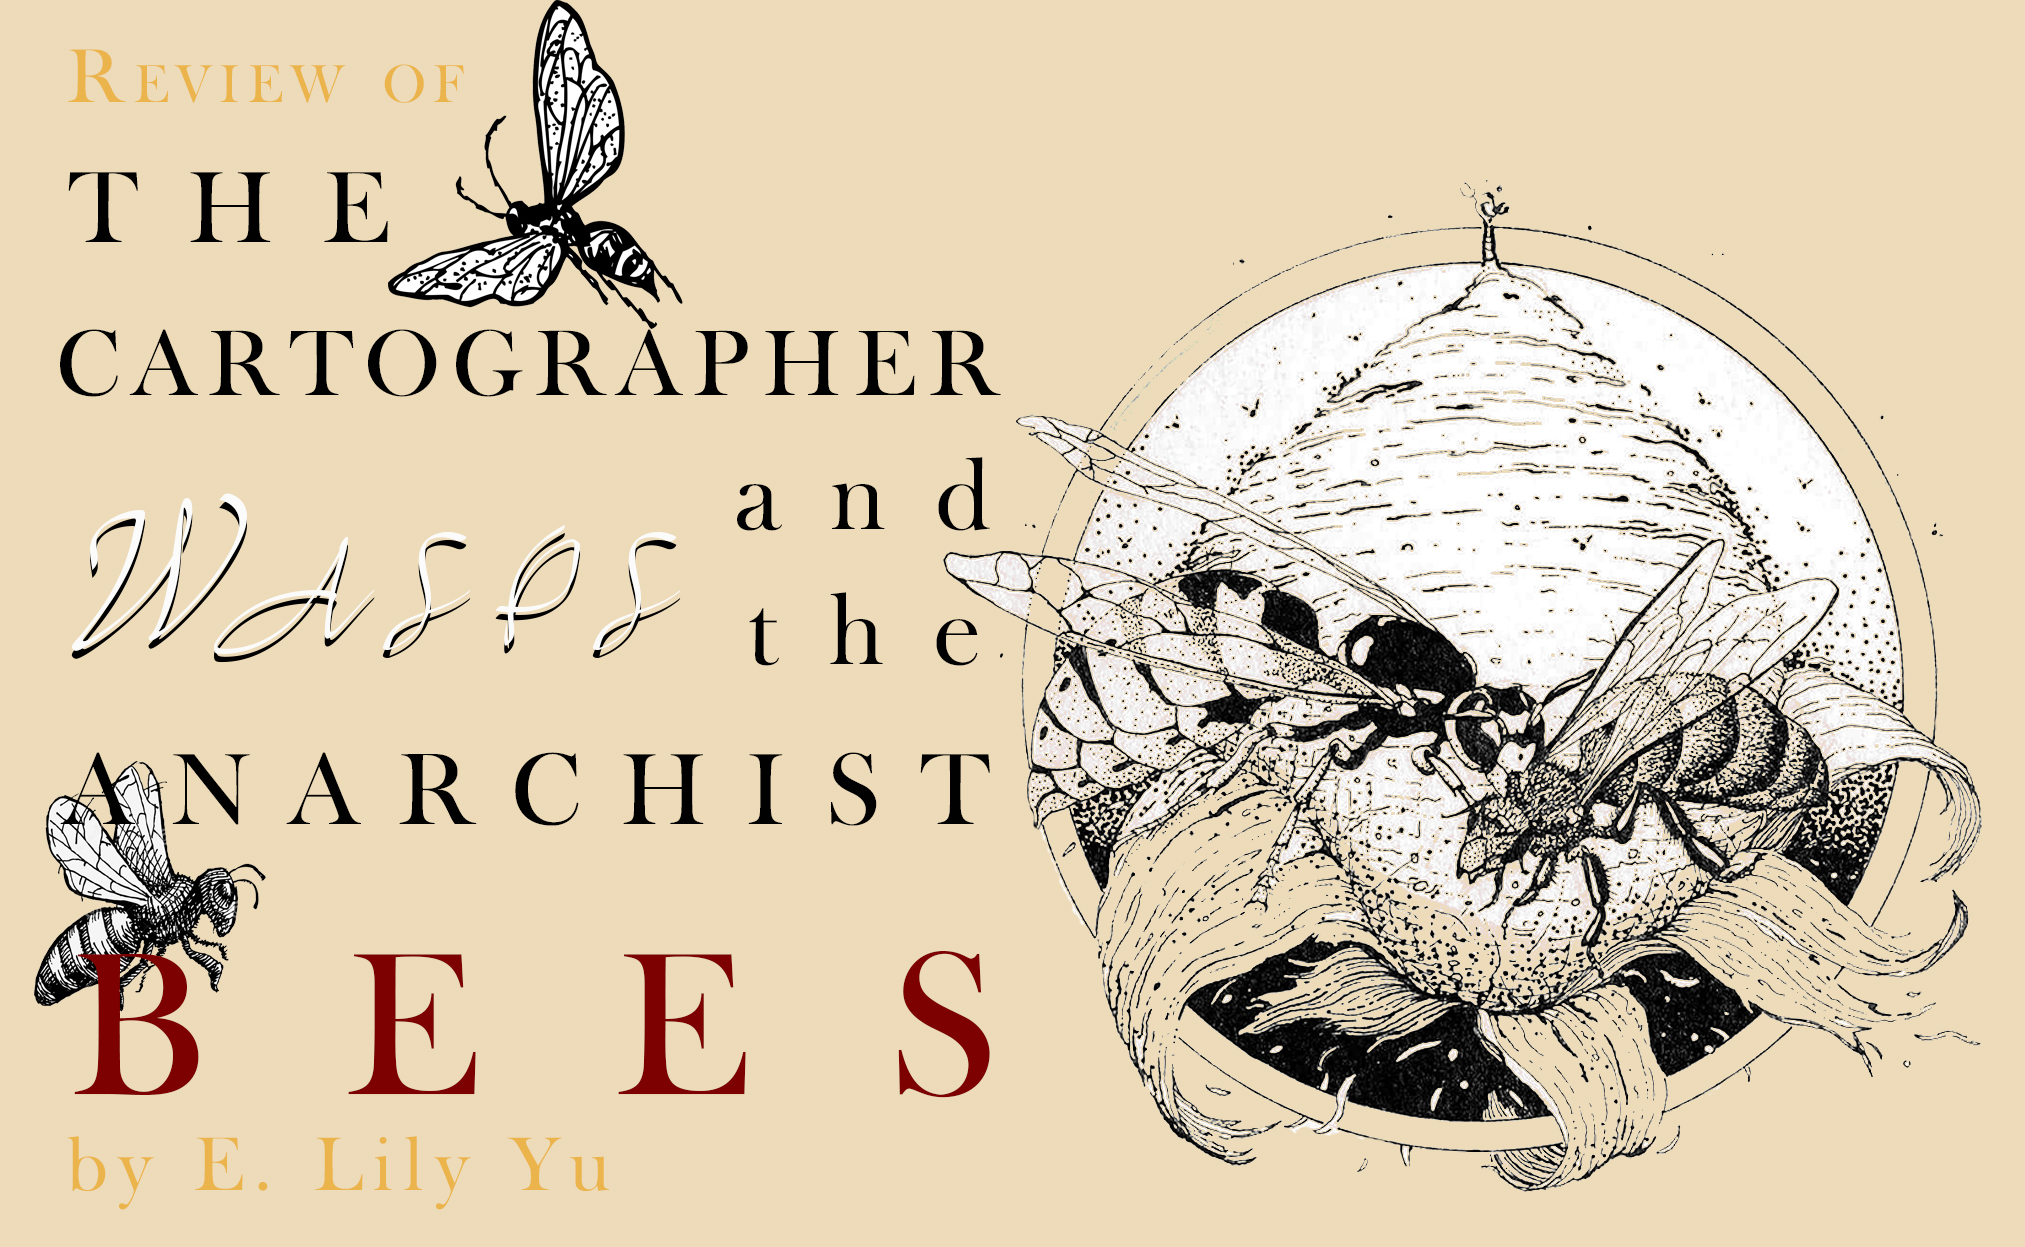 Review of The Cartographer Wasps and the Anarchist Bees by E. Lily Yu